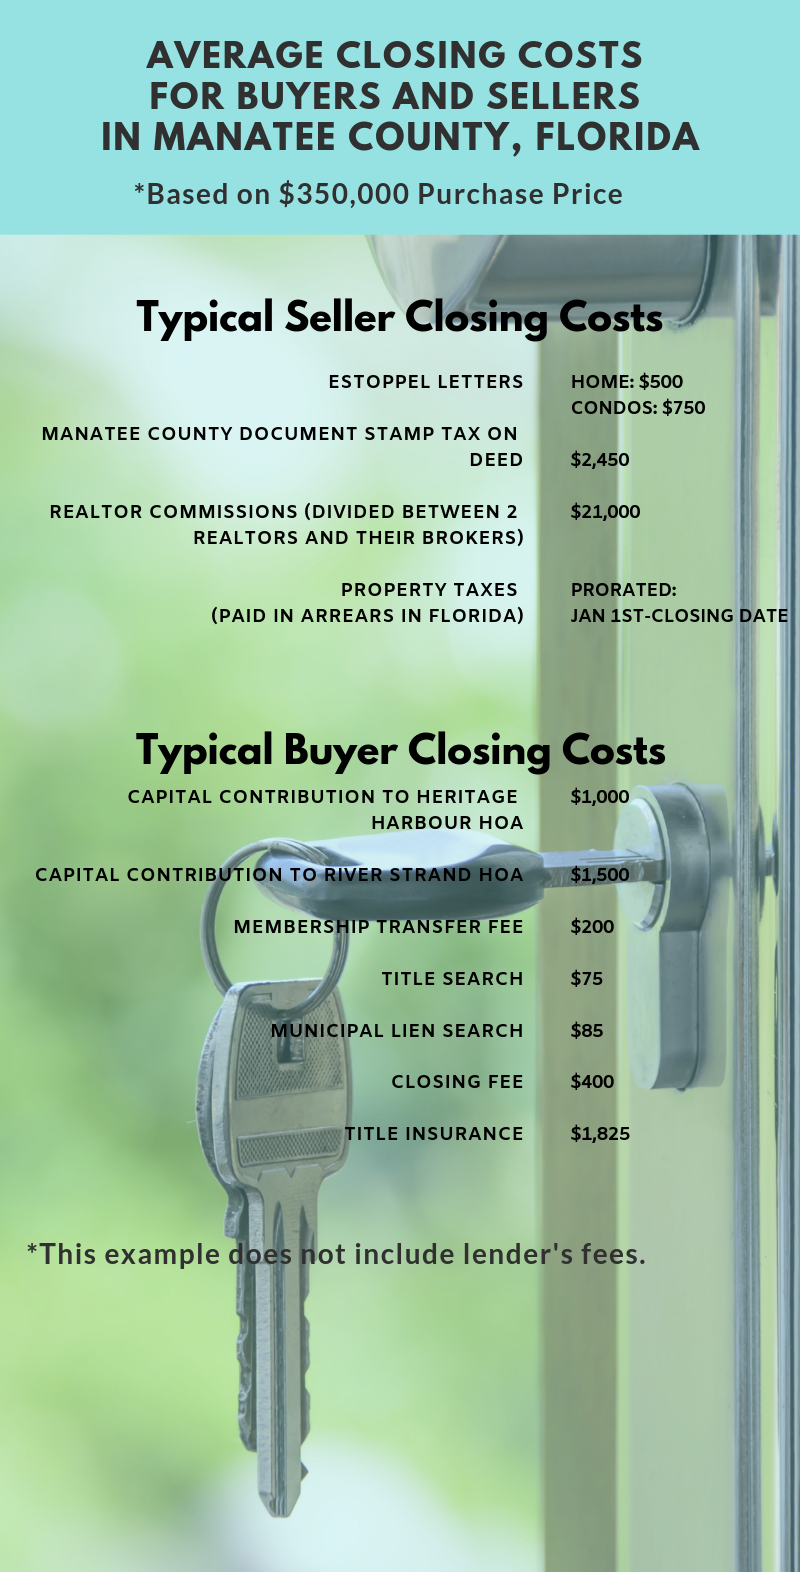 Infographic Showing the Average Closing Costs for Buyers and Sellers in Manatee County, Florida